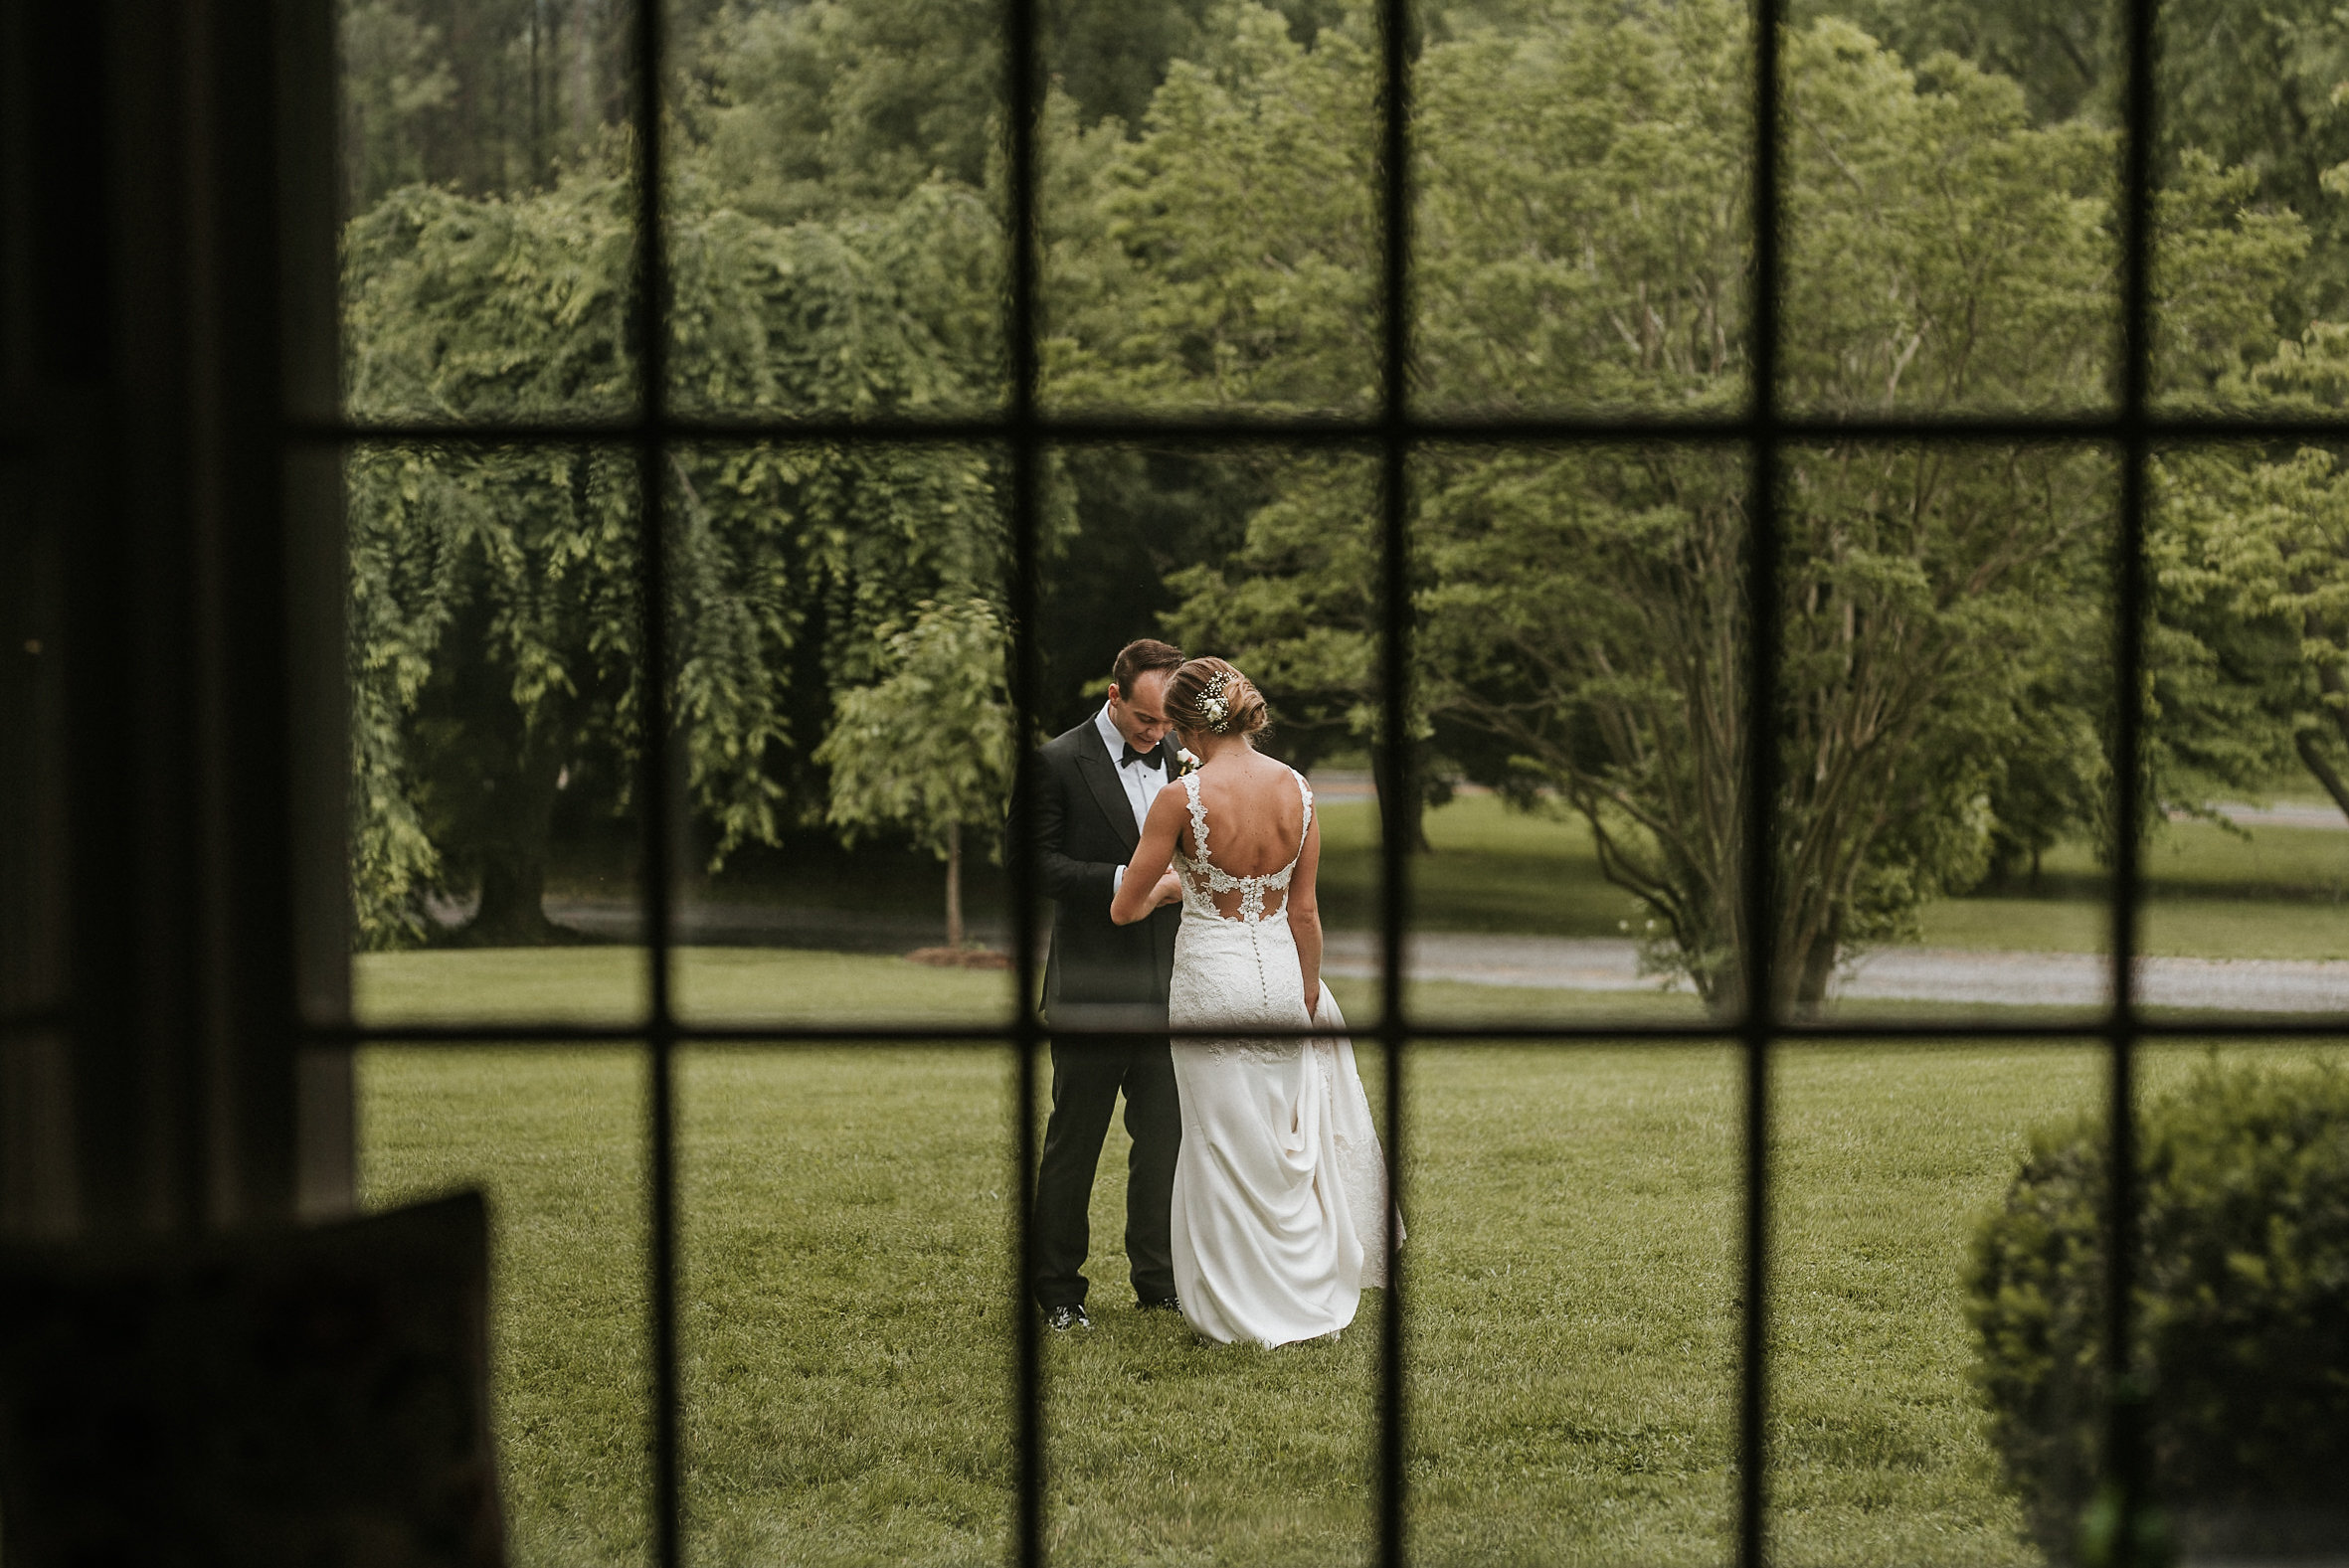 Bride and groom seen through window